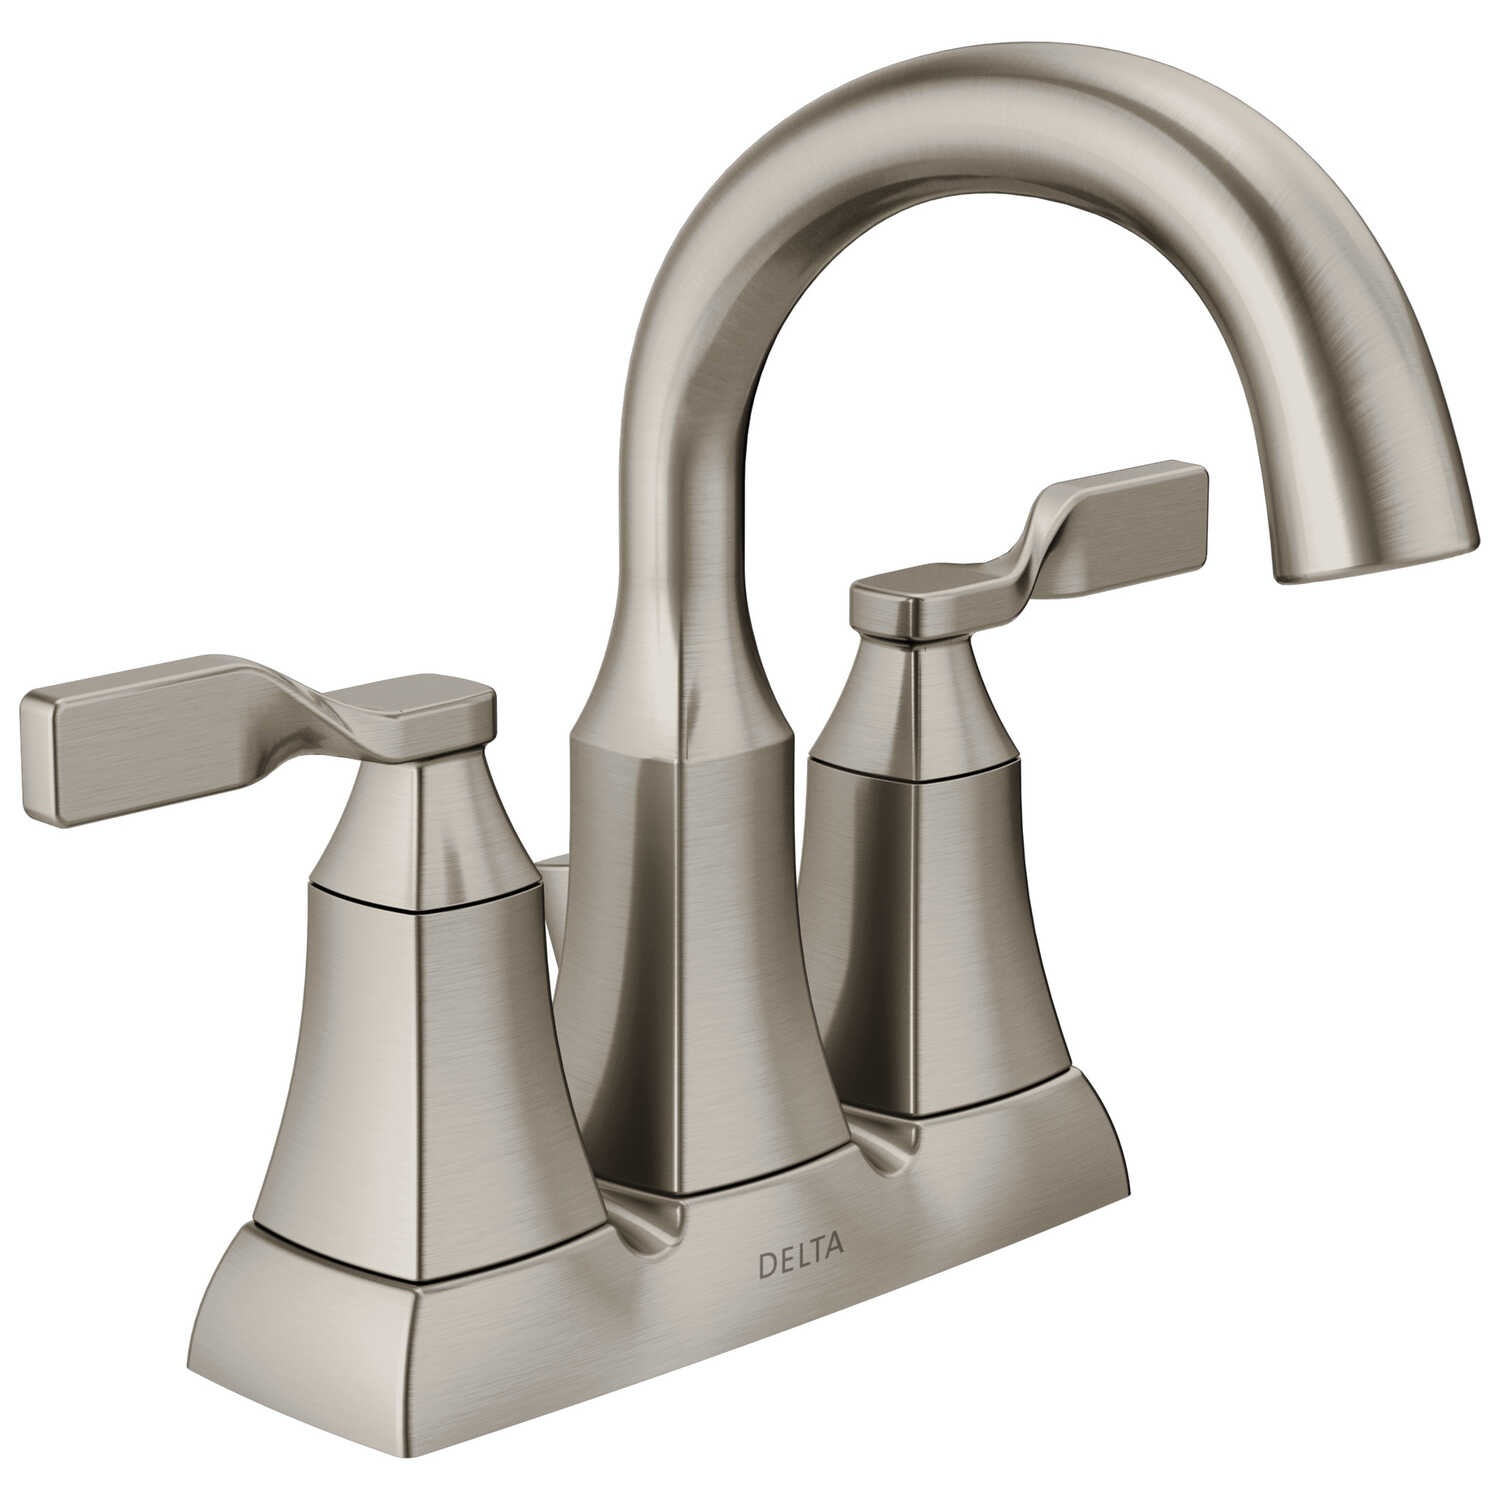 Delta sawyer two handle lavatory pop up faucet 4 in - Delta bathroom faucets brushed nickel ...